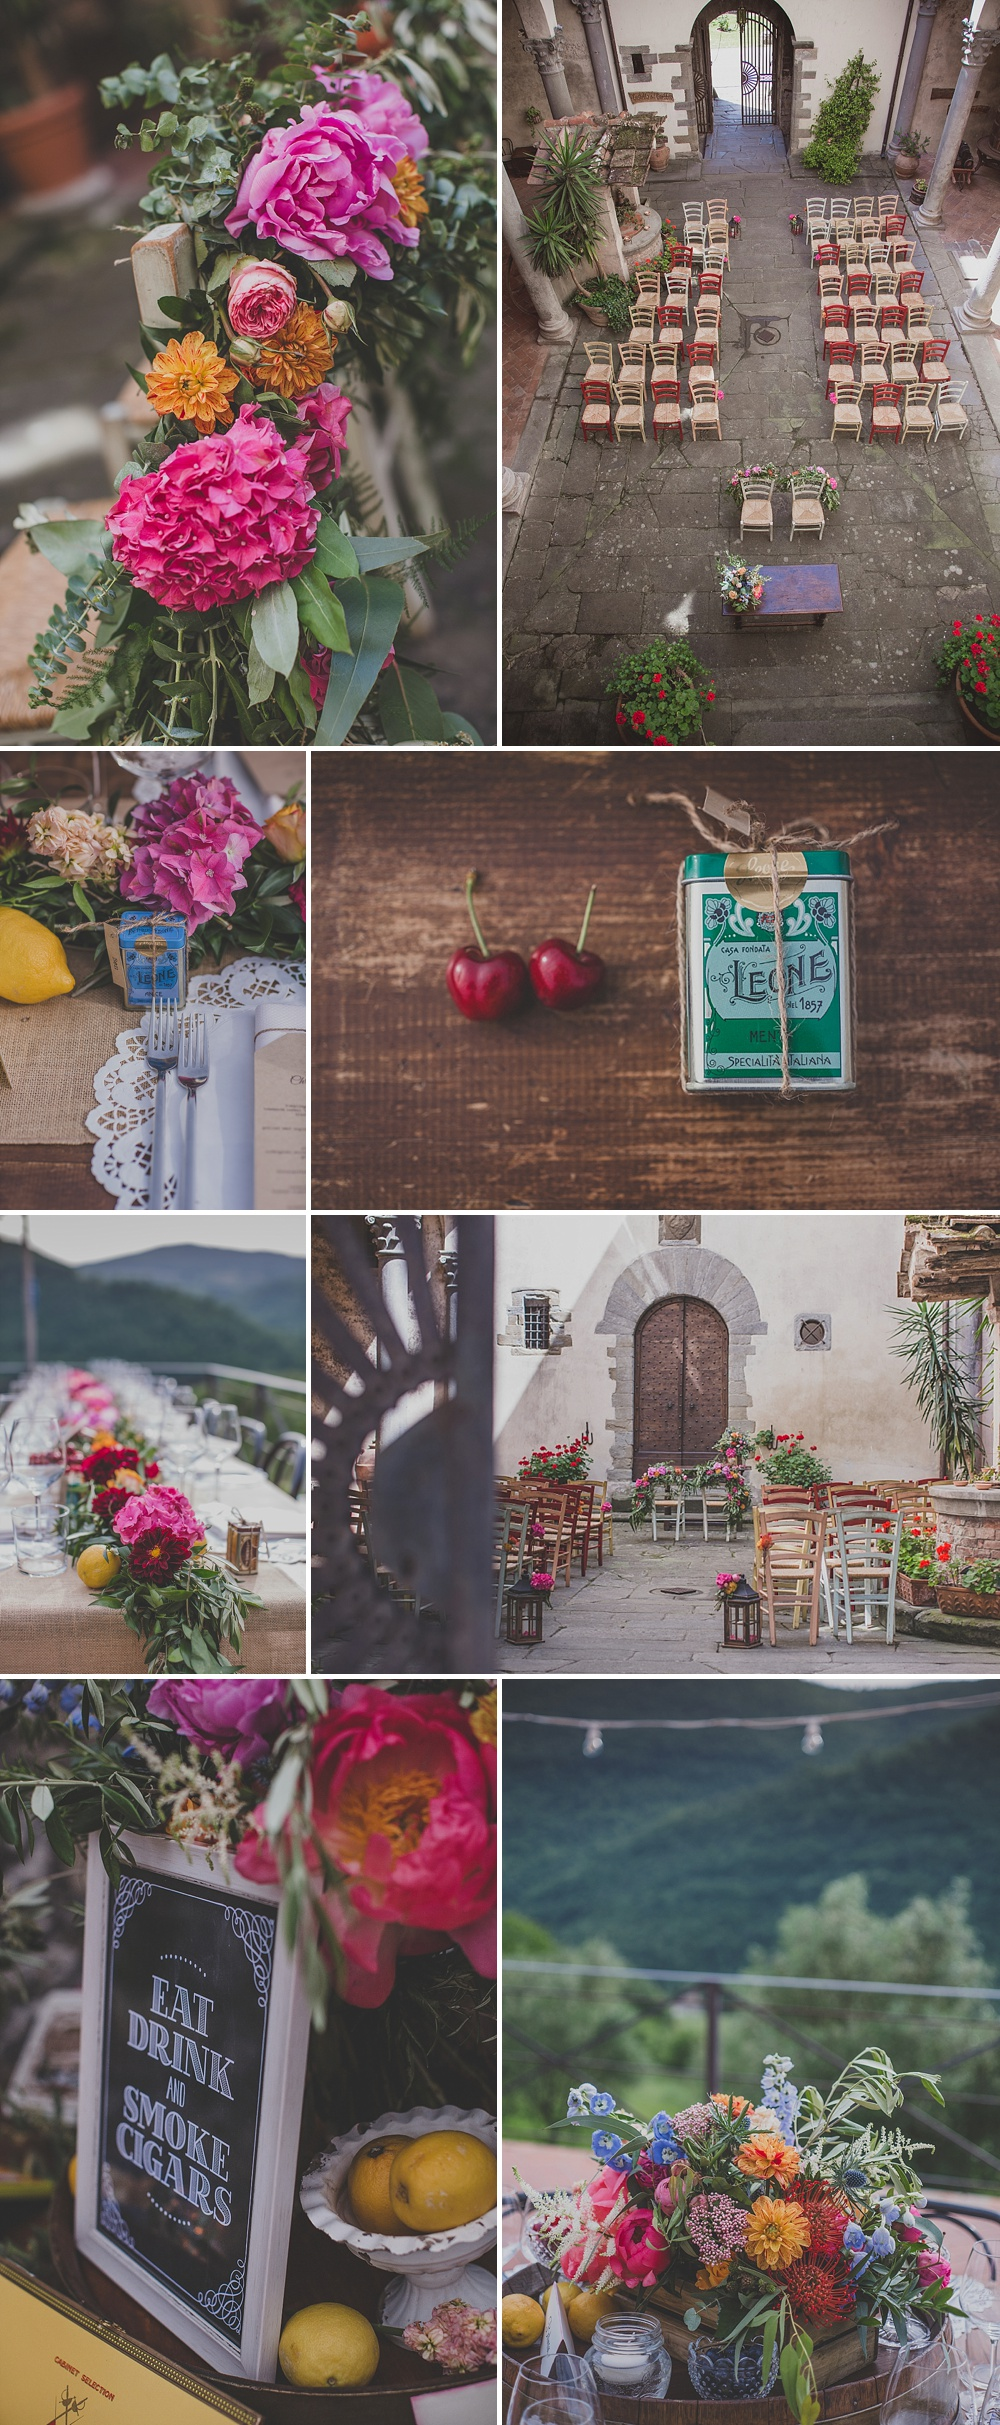 Tuscany Wedding // Vibrant Decor With A Classic Italian Twist